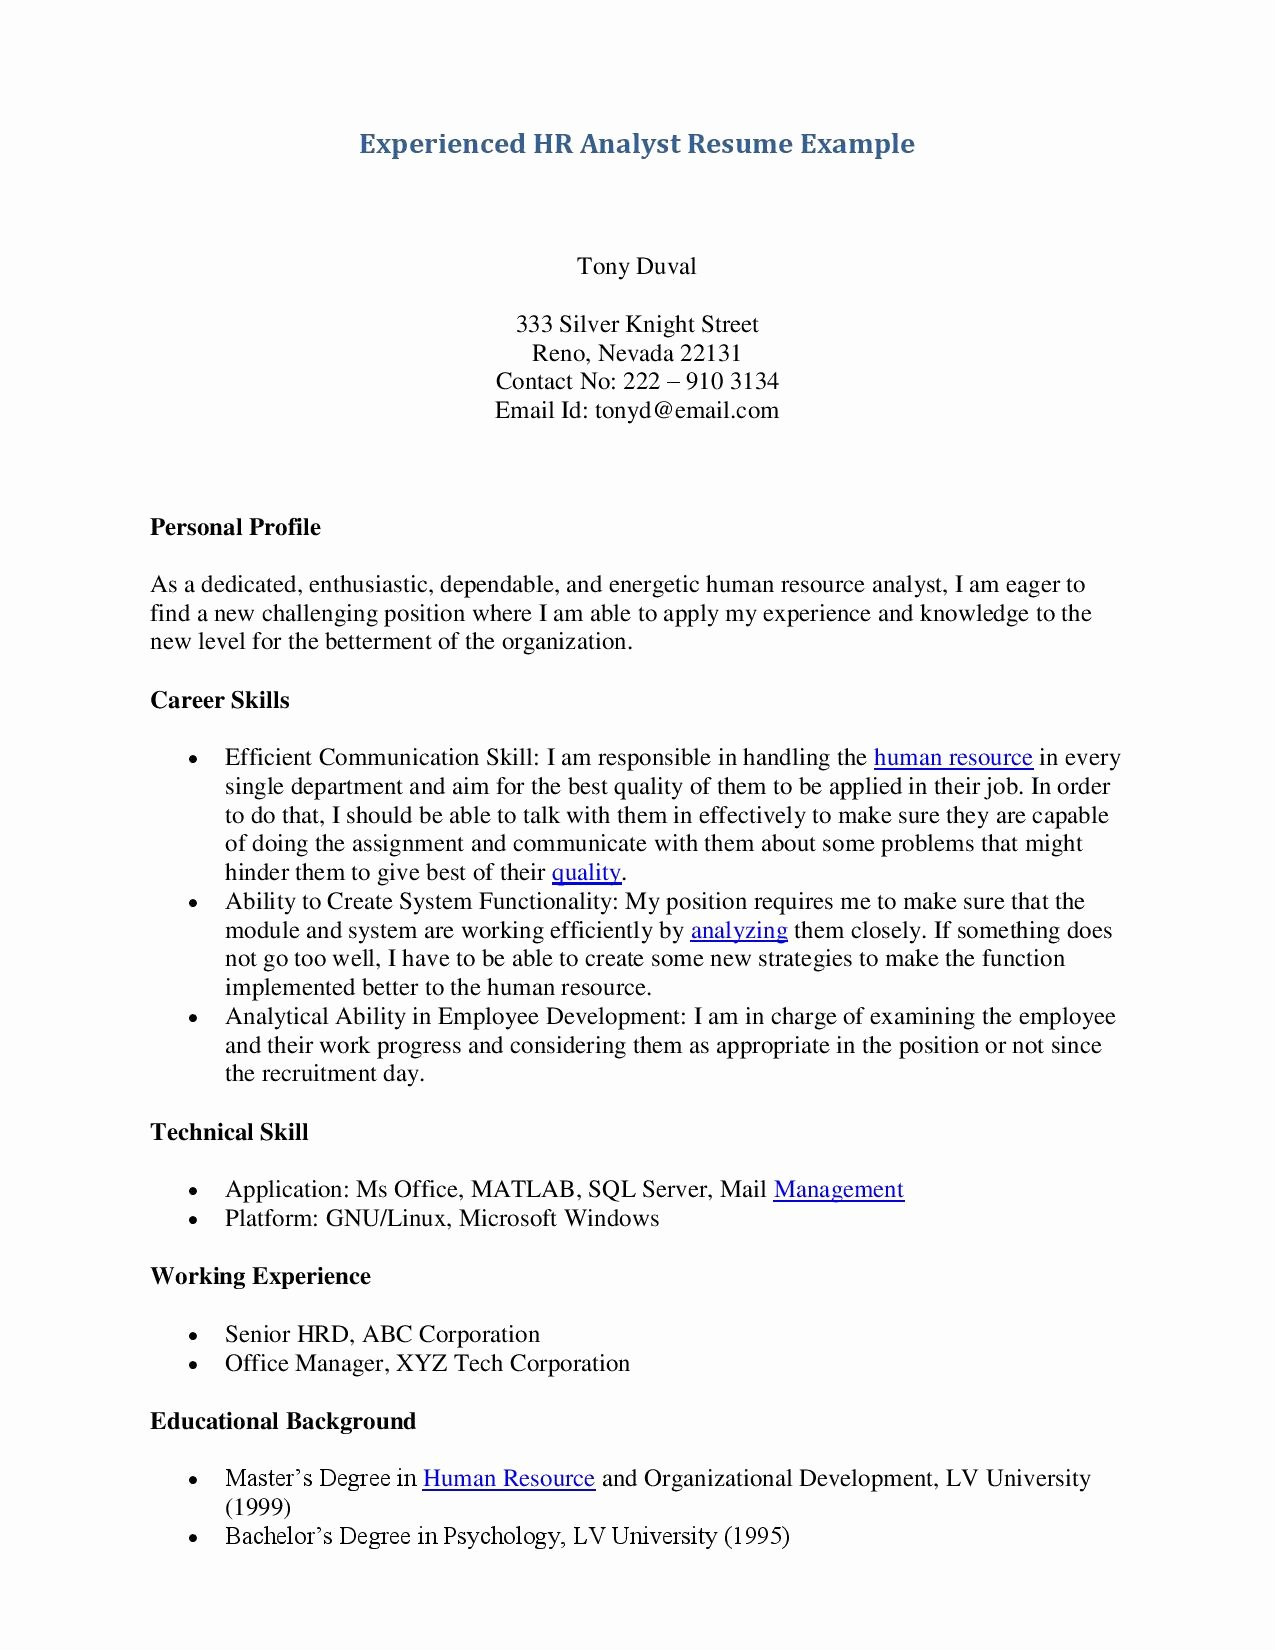 Examples Resumes for Jobs with No Experience